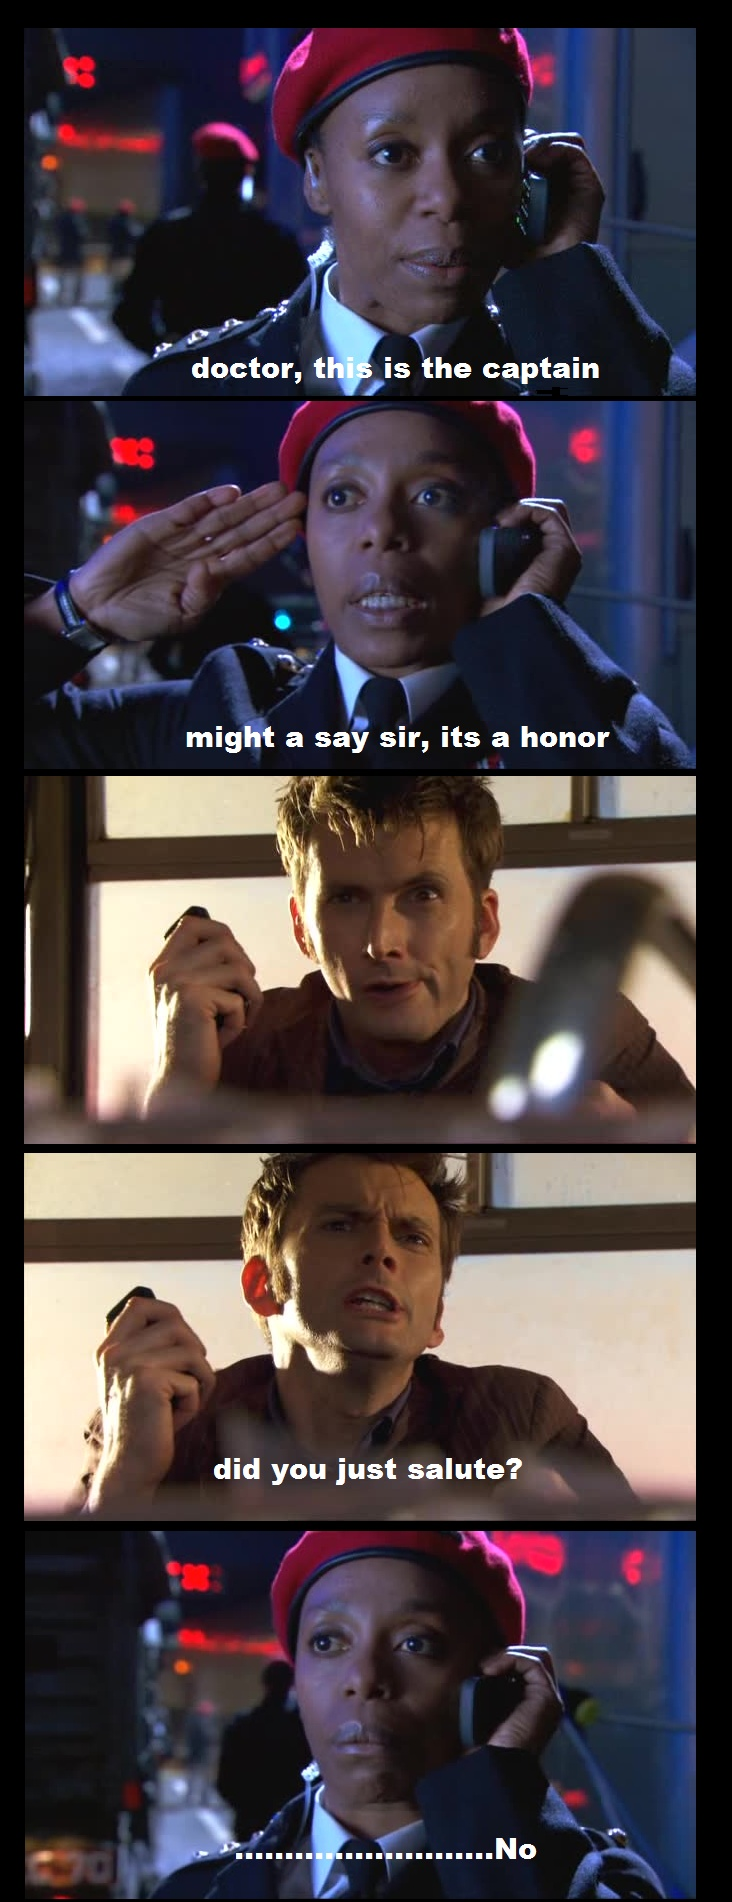 LOL! i love the humor on Dr. Who